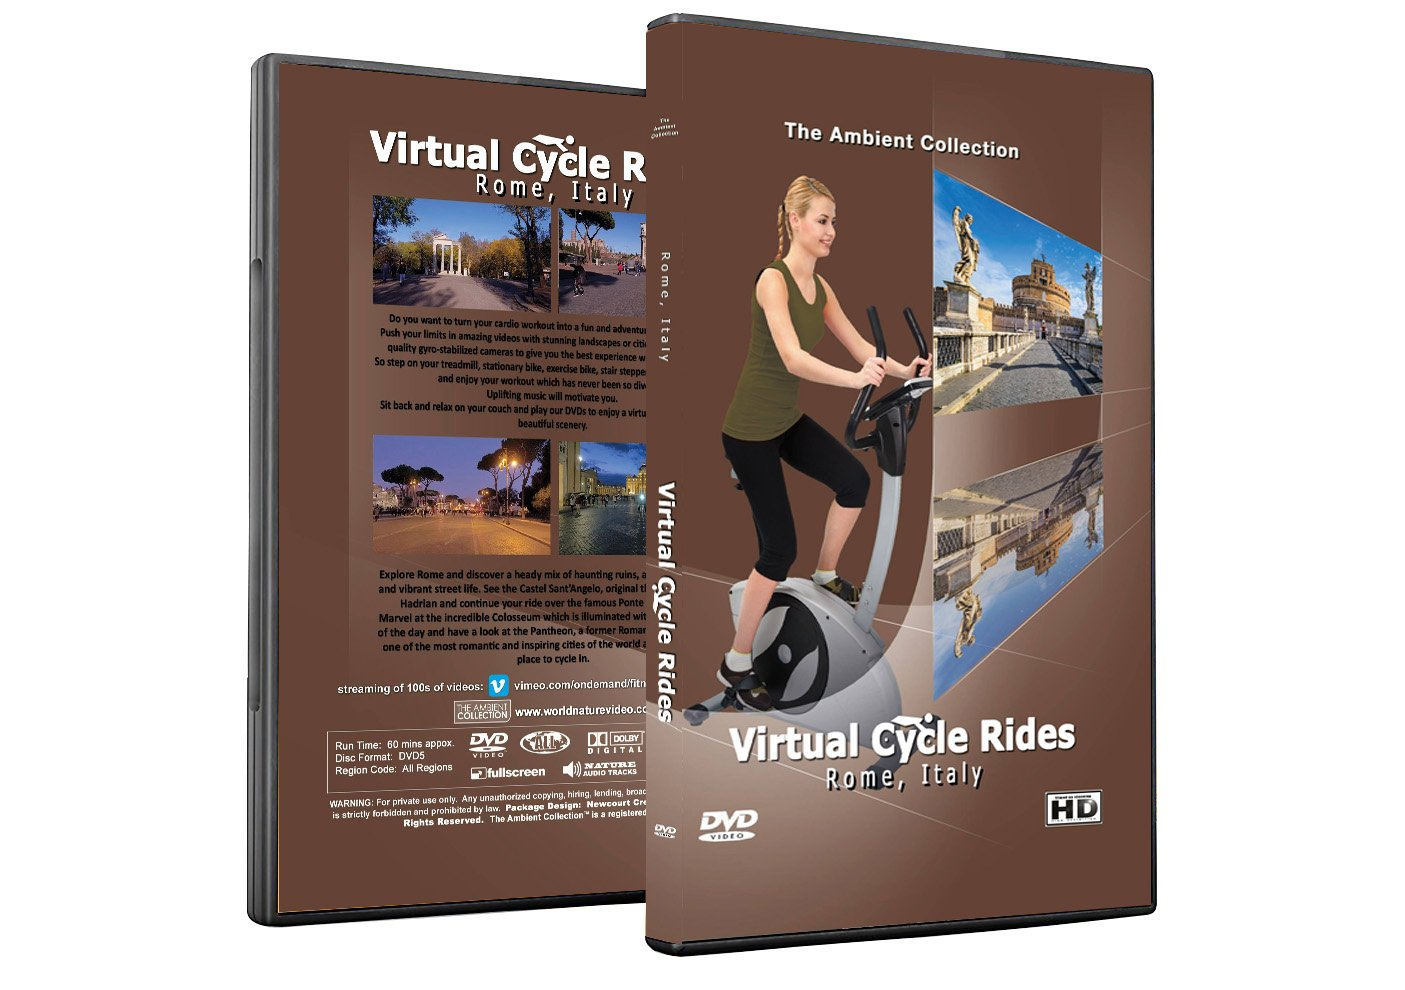 Virtual Cycle Rides DVD - Rome, Italy - for Indoor Cycling, Treadmill and Jogging Workouts